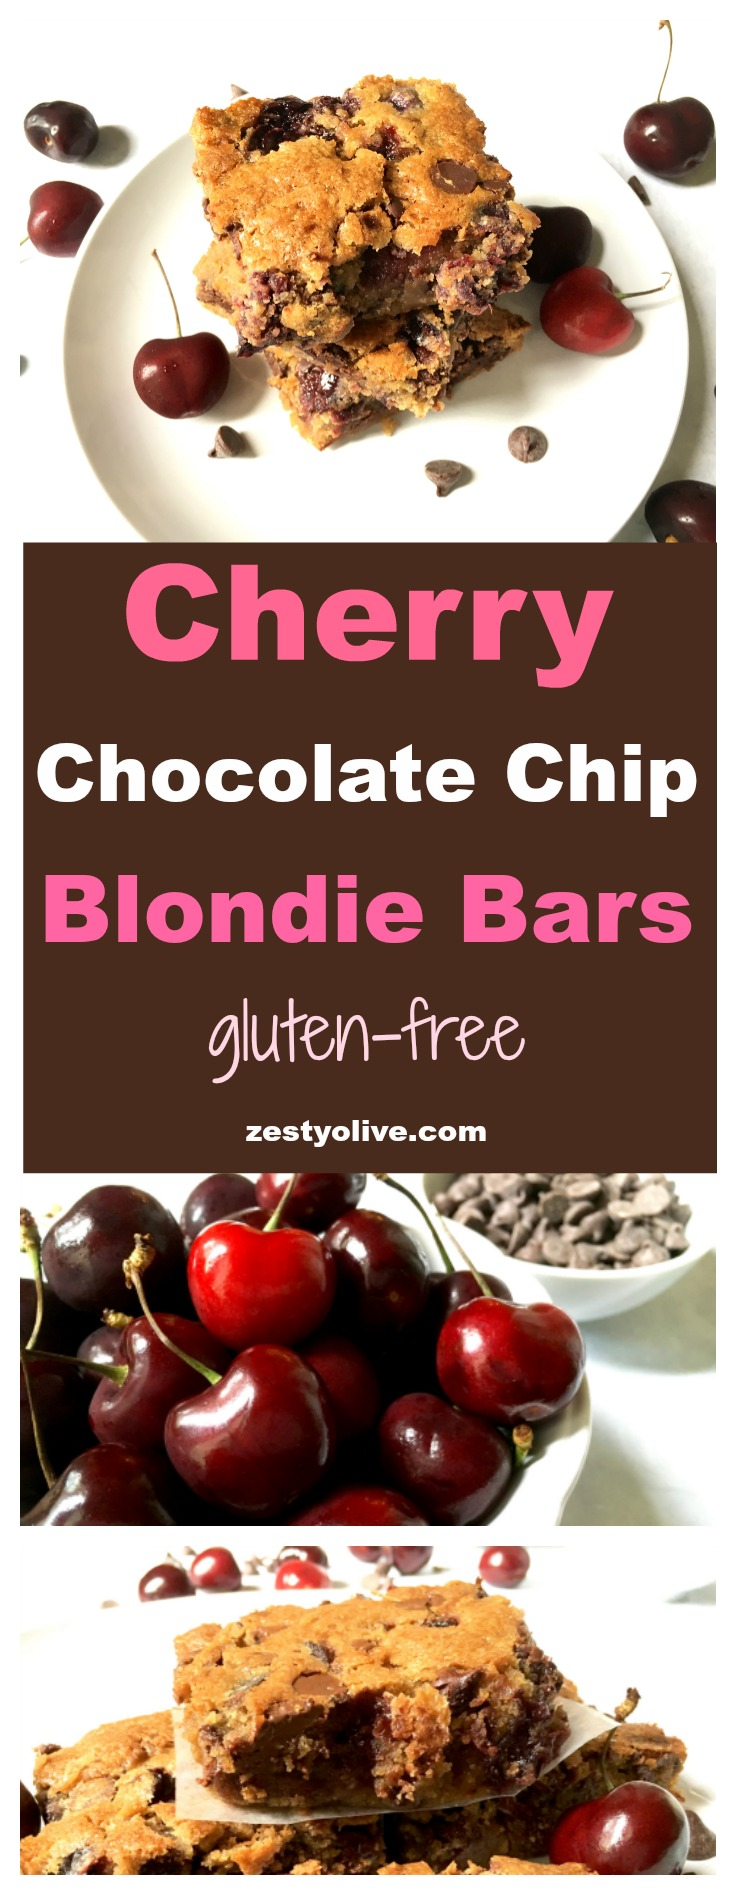 Cherry Chocolate Chip Blondie Bars Gluten-Free